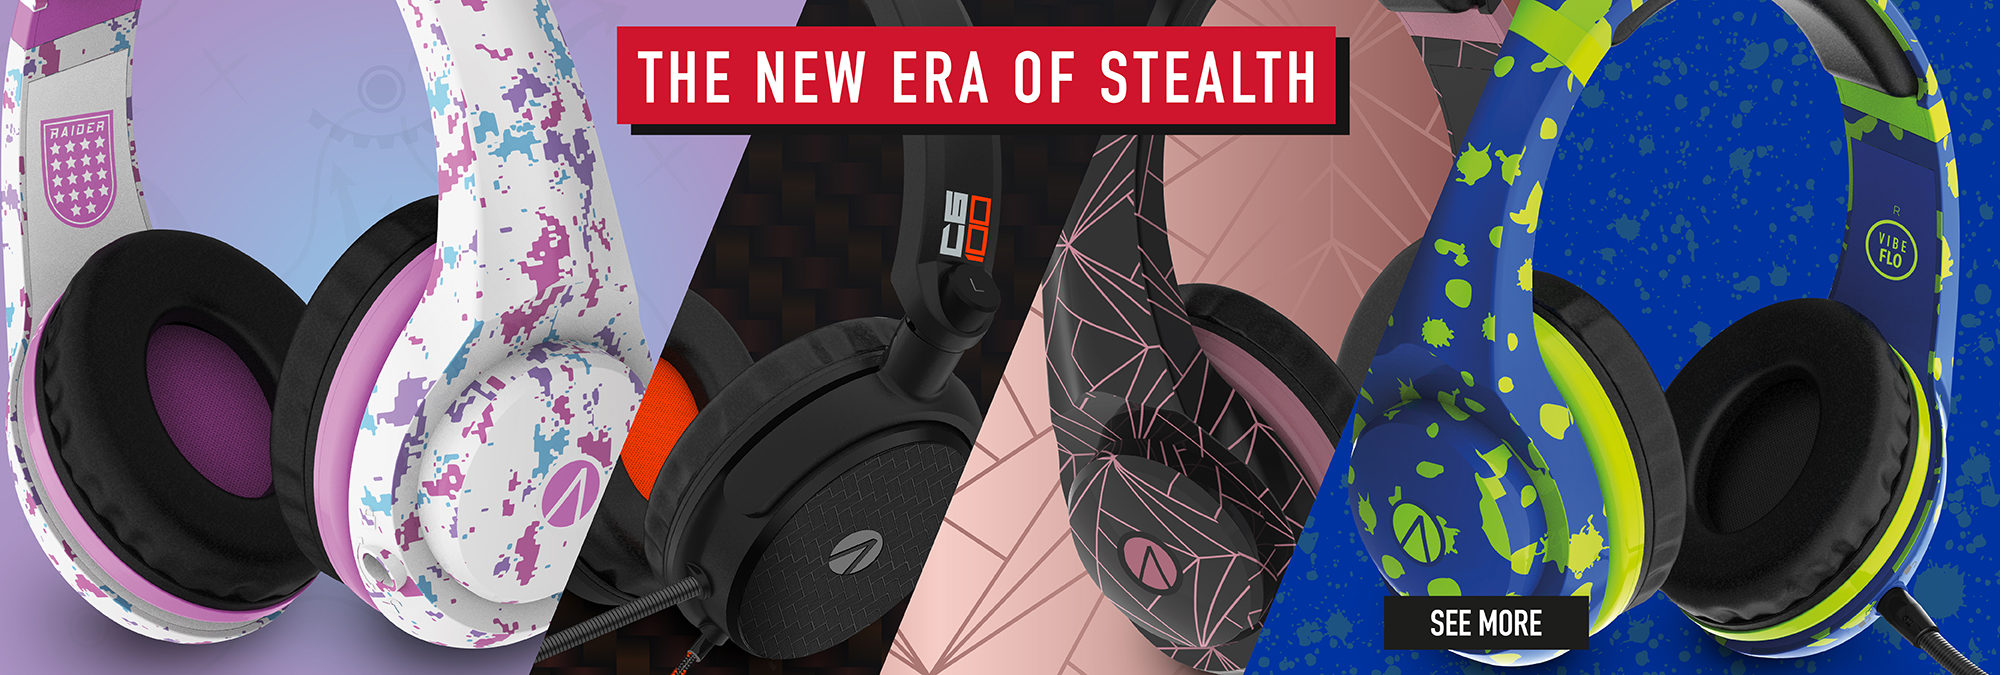 The NEW ERA of STEALTH Gaming Accessories! See the NEW Collection here!